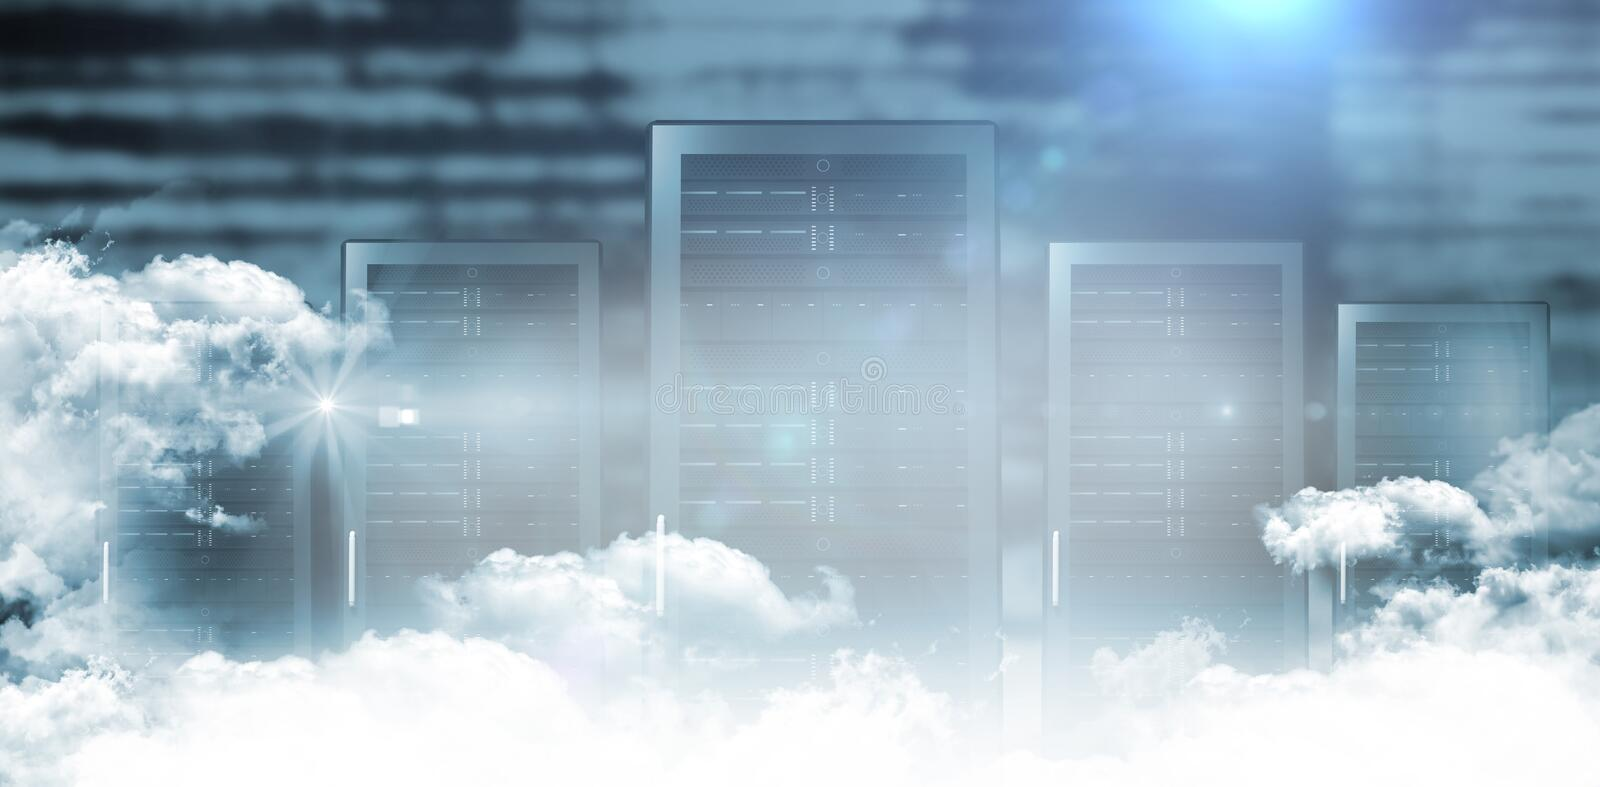 Servers in the clouds stock illustration